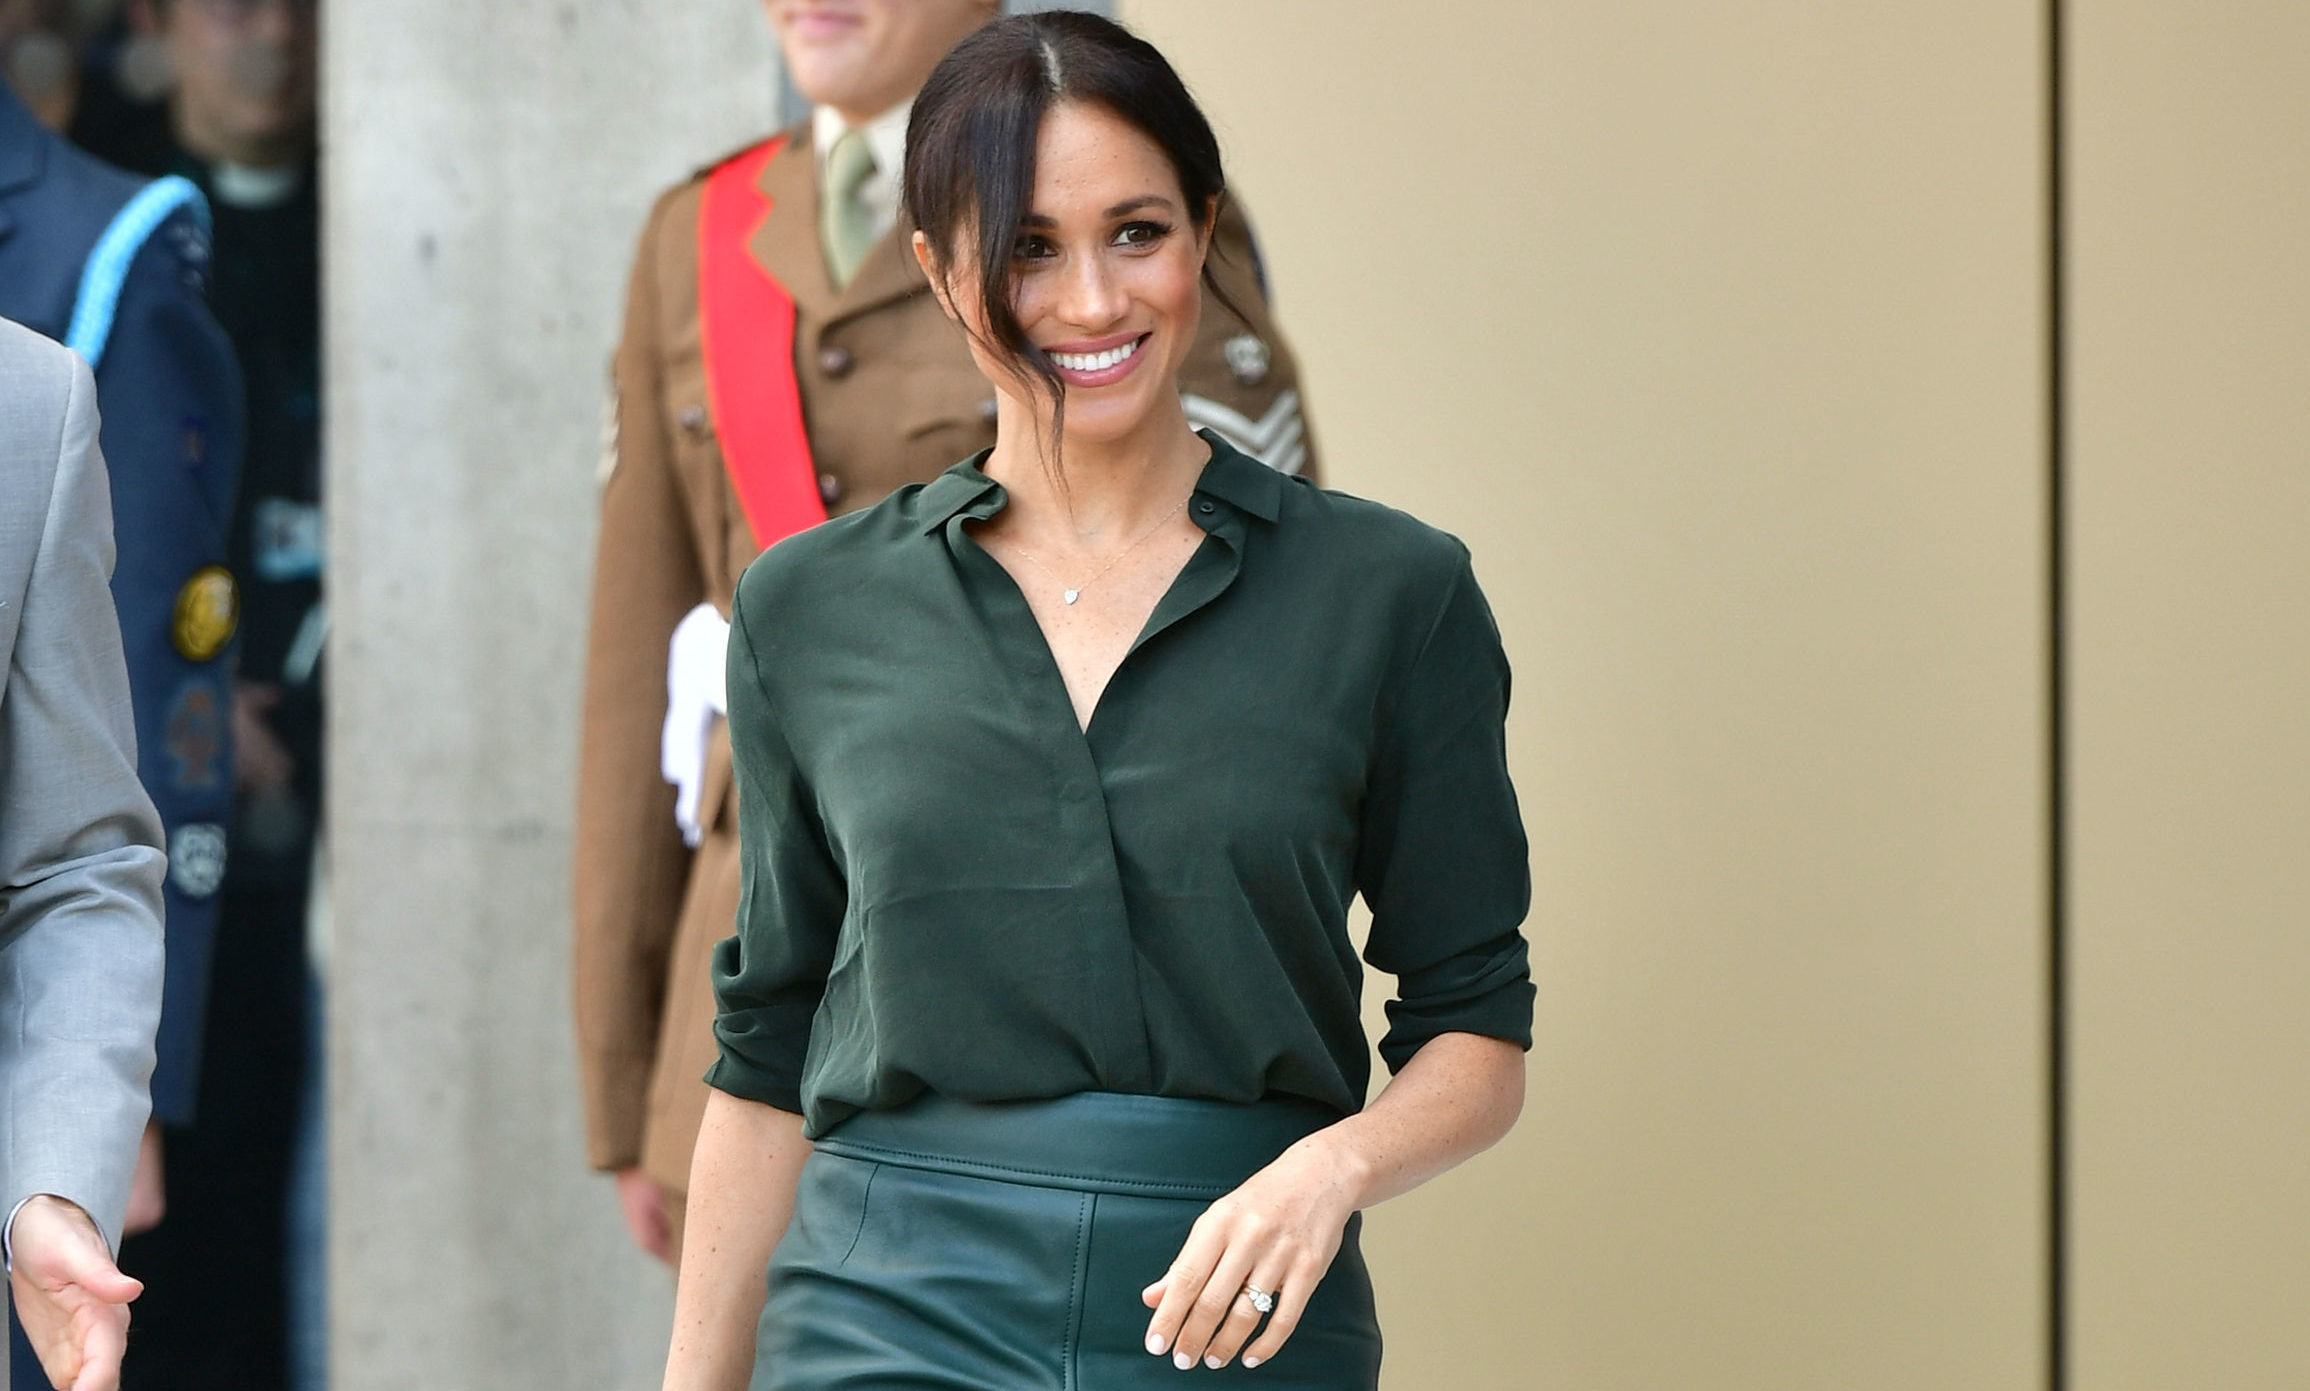 The Duchess of Sussex arrives at the University of Chichester, Bognor Regis, West Sussex, as part of her first joint official visit to Sussex. (PA)